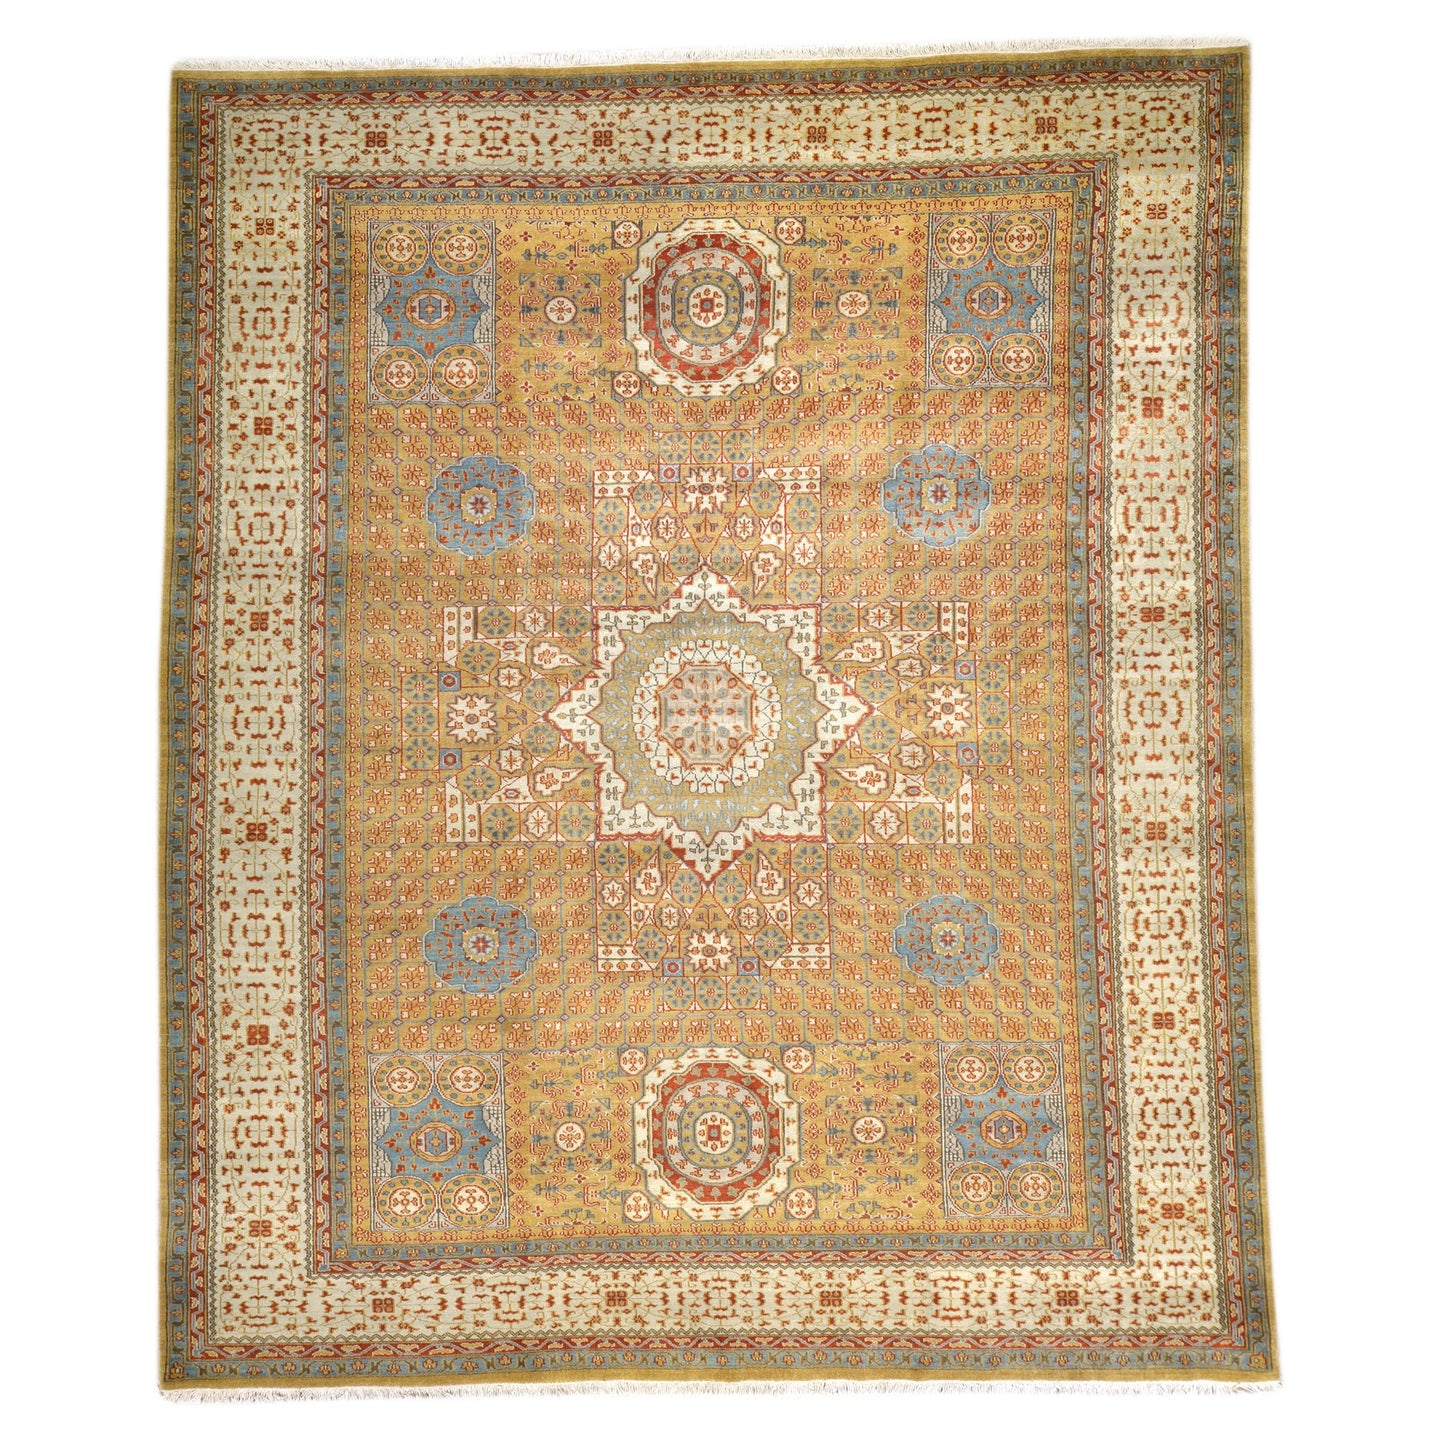 Oriental rugs, hand-knotted carpets, sustainable rugs, classic world oriental rugs, handmade, United States, interior design,  Brral-1185